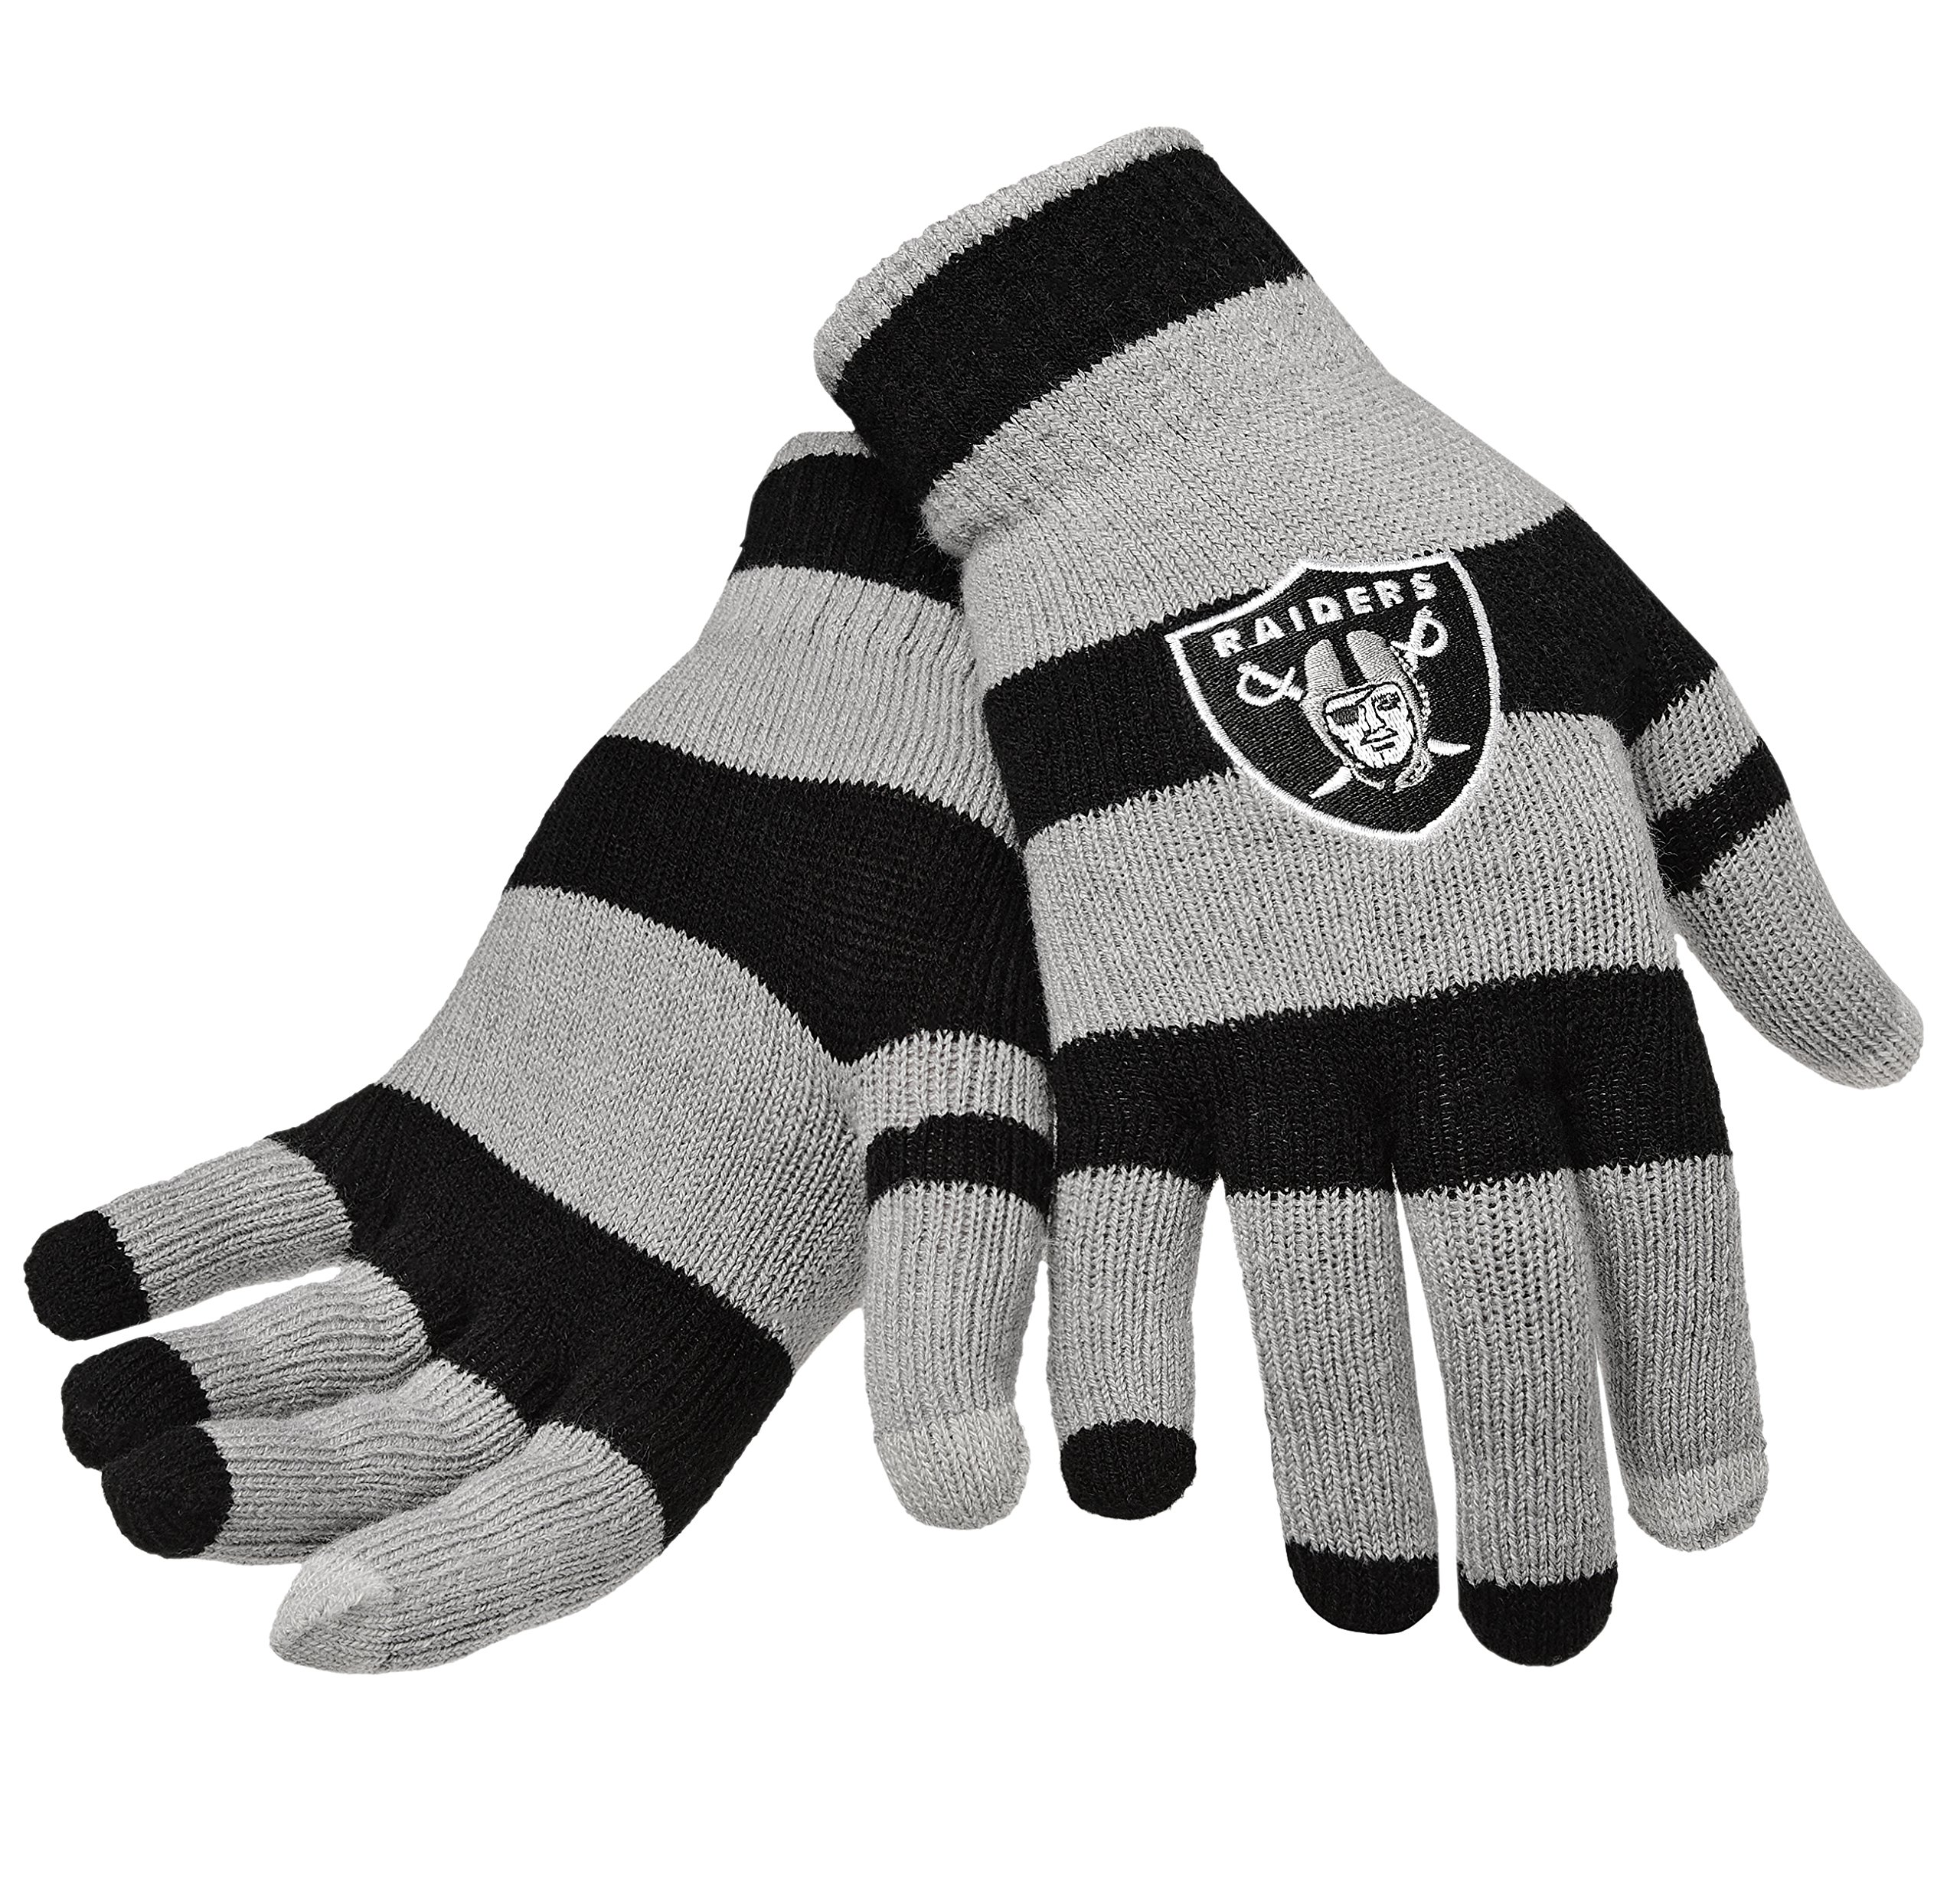 Official NFL Football Licensed Knit Stripe Glove with Texting Tips, One Size, OAKLAND RAIDERS